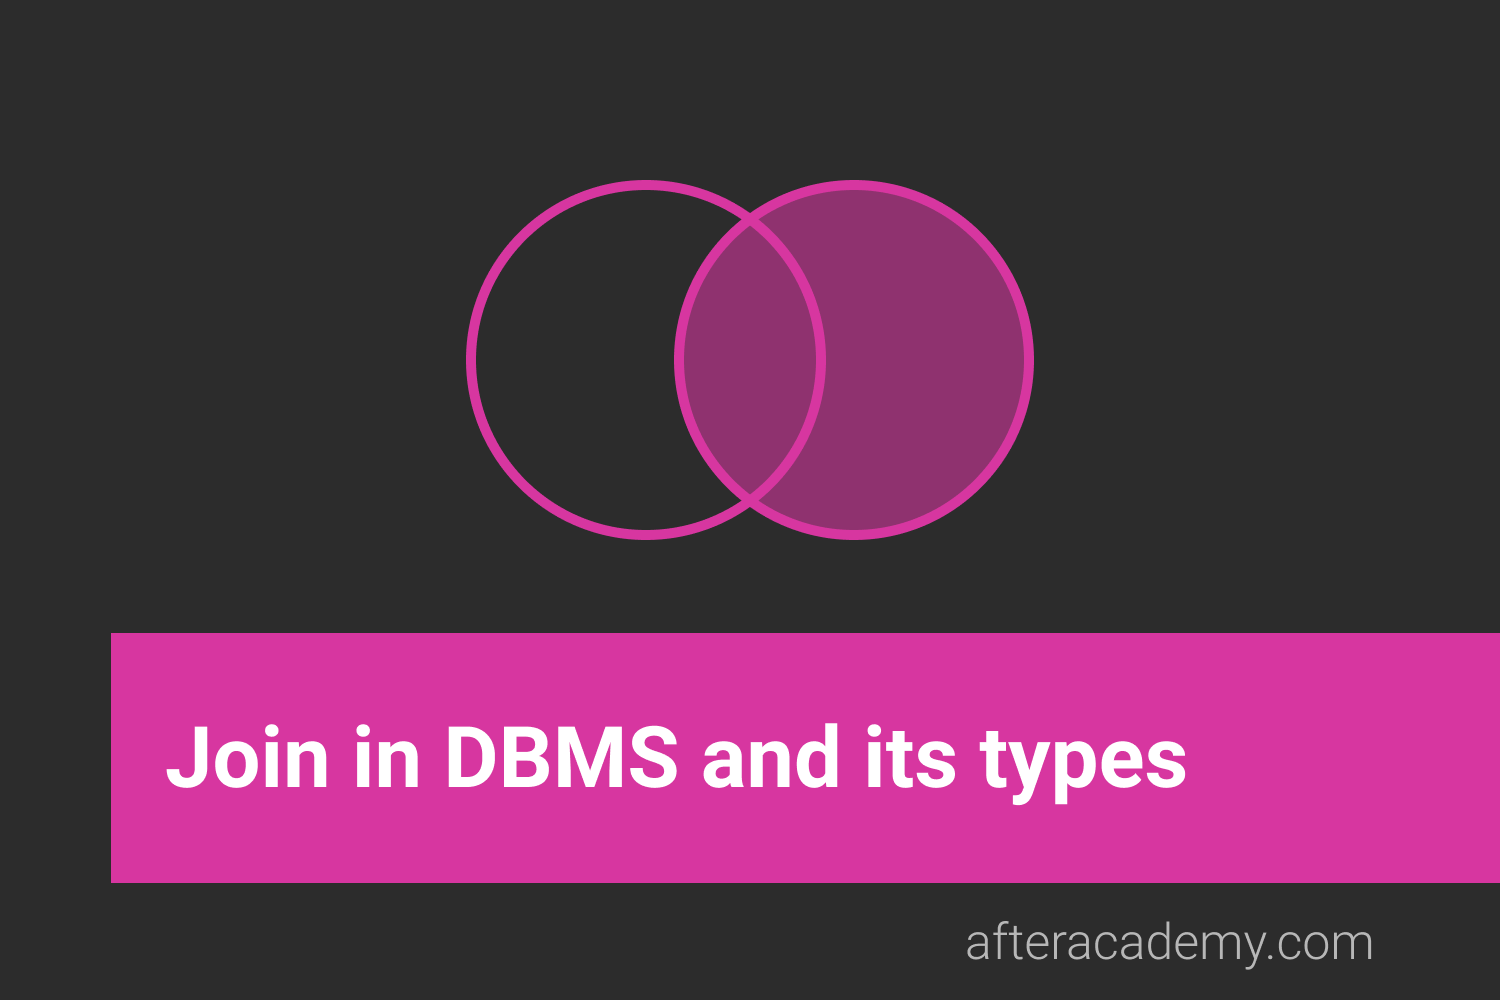 What is Join in DBMS and what are its types?